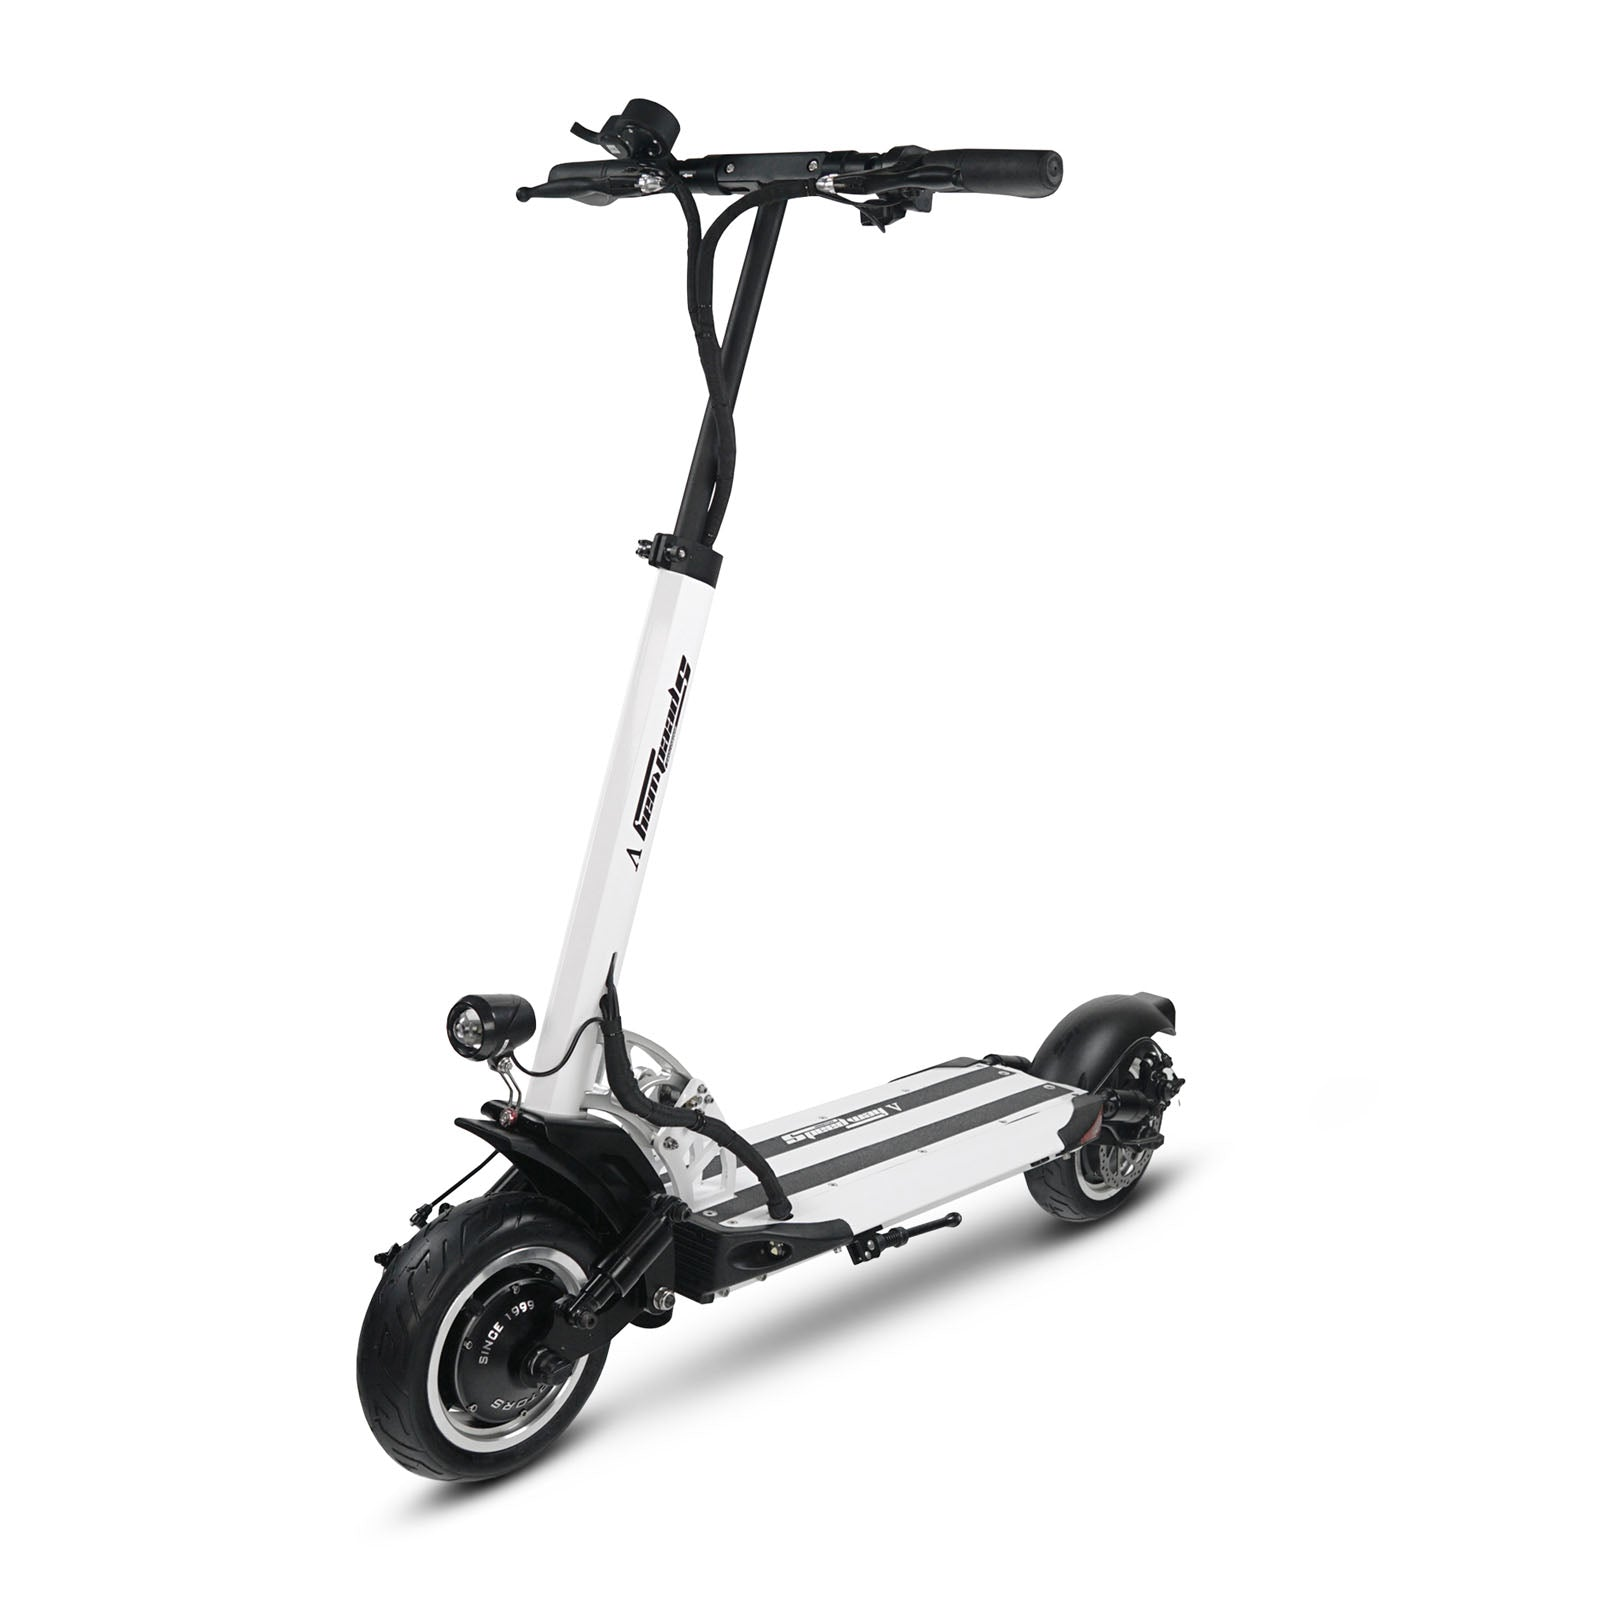 Sdway 5 Electric Scooter on